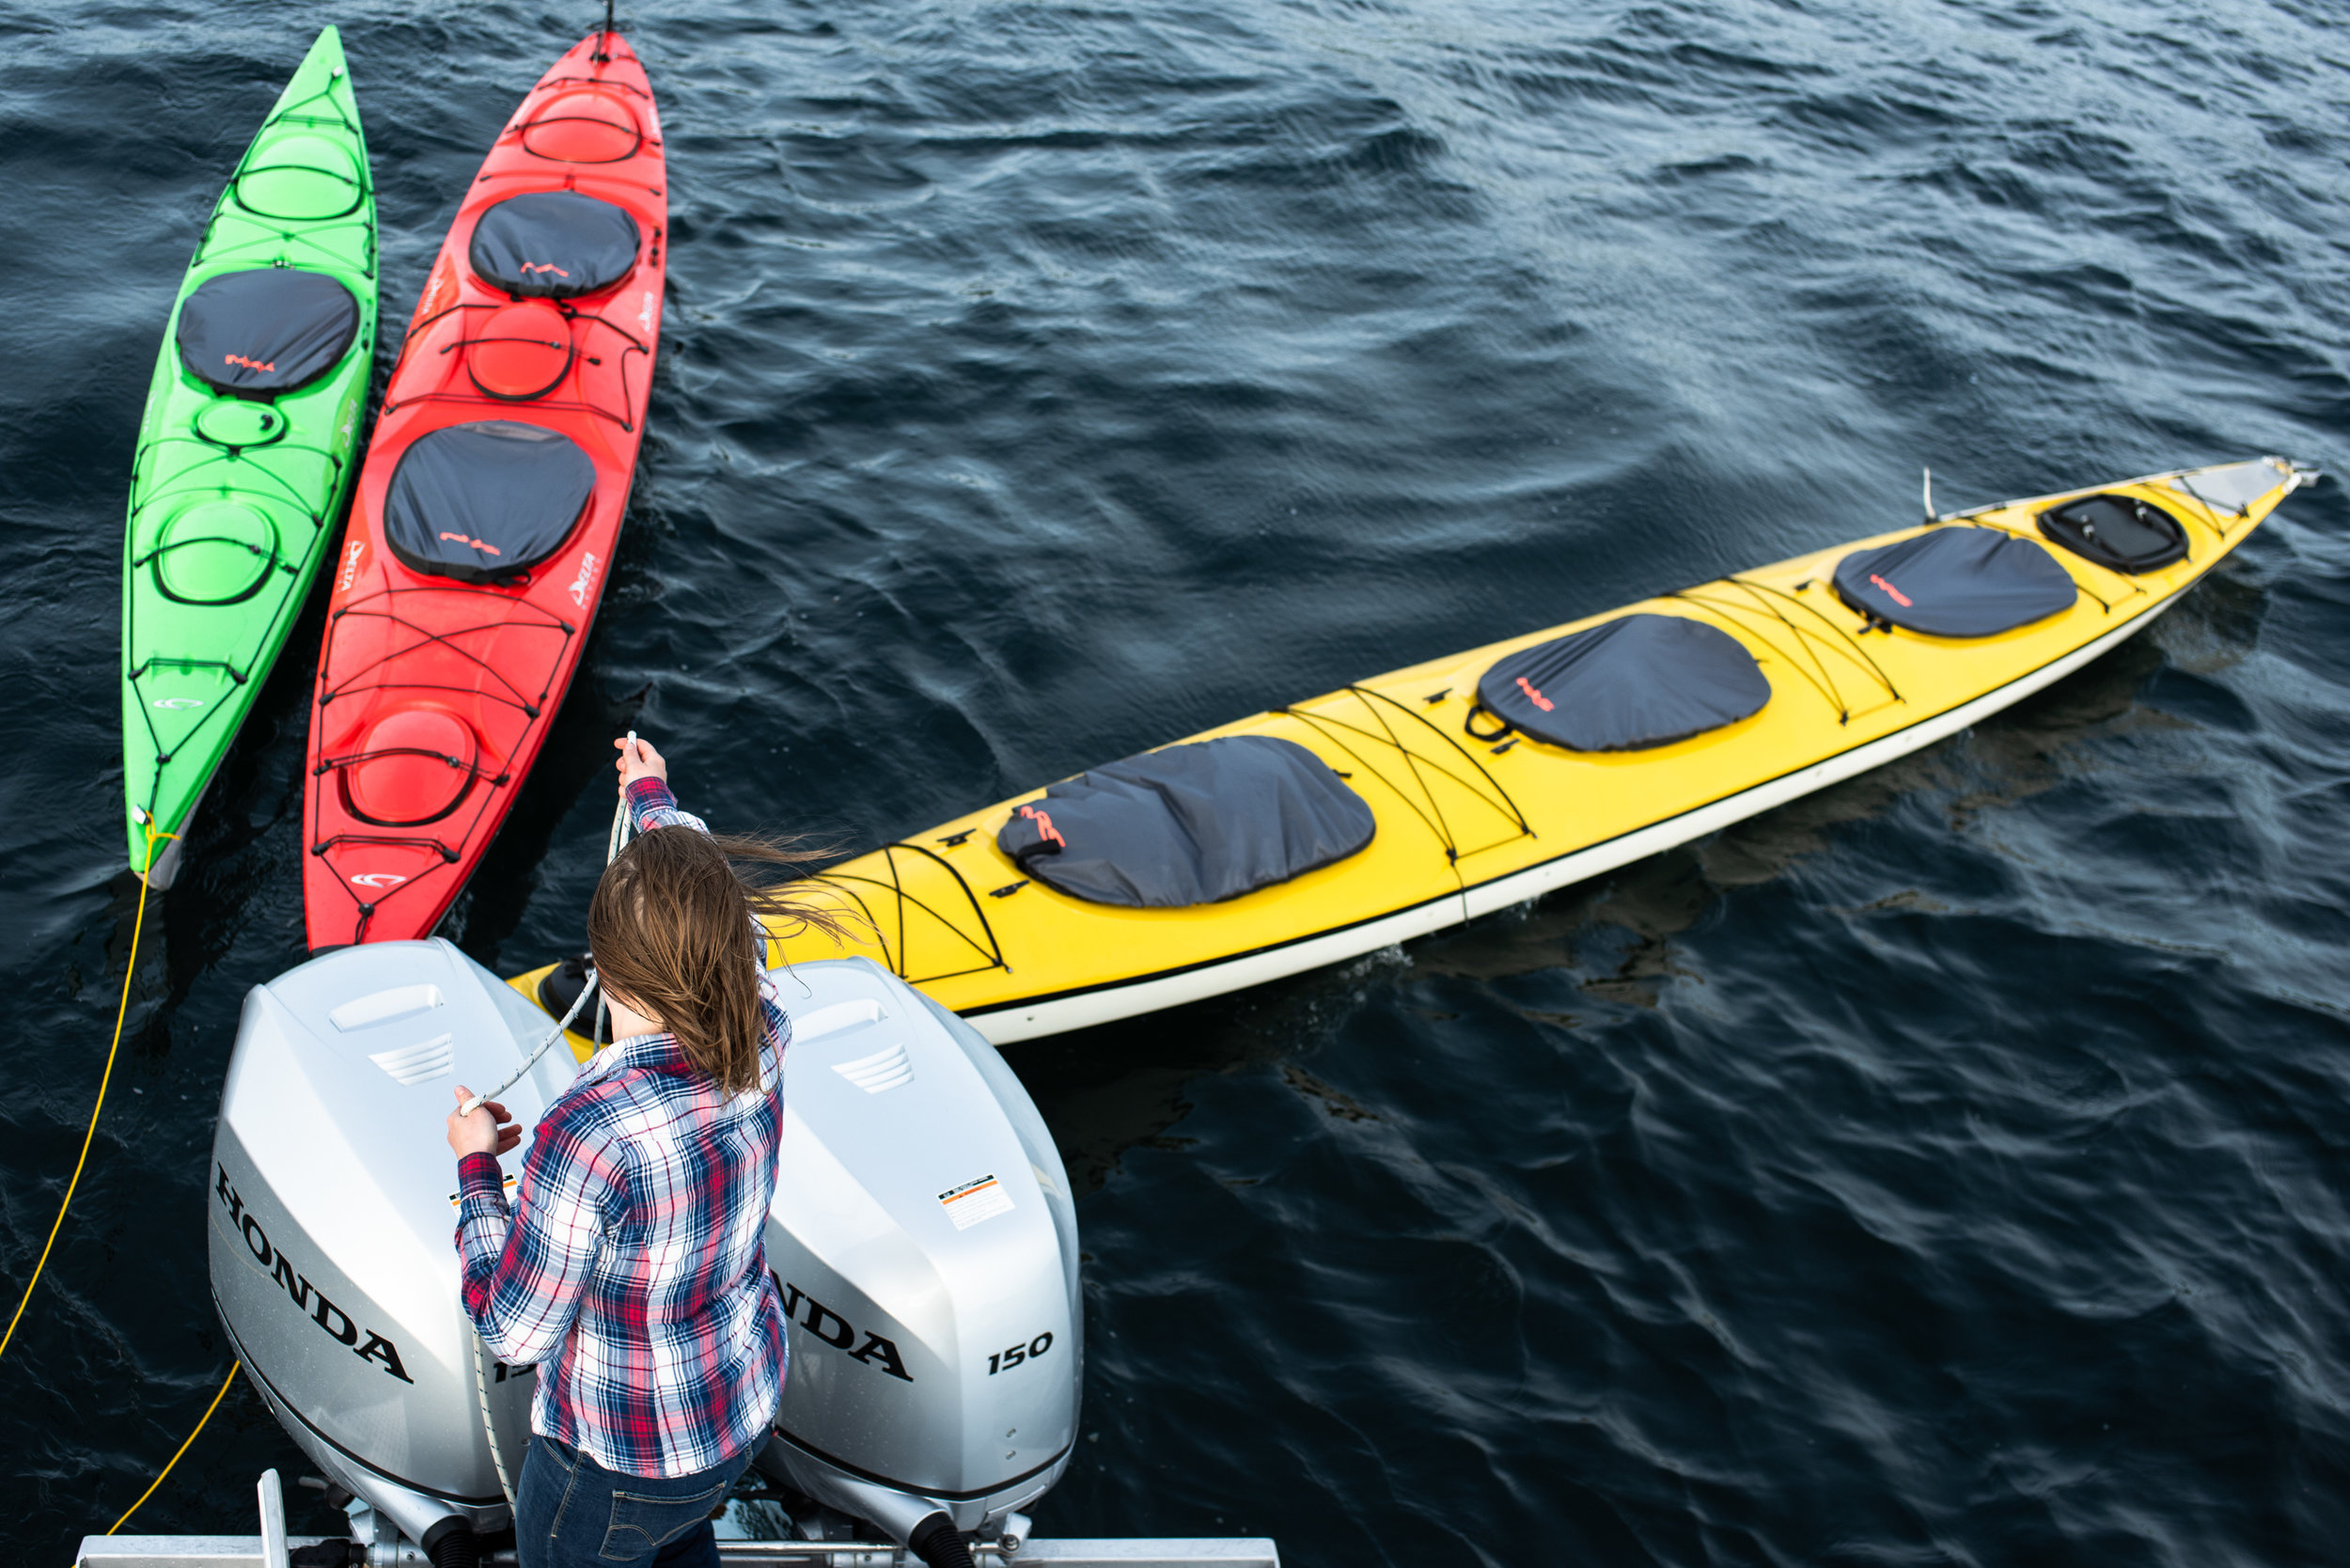 KAYAKS, MOTORS, & OCEAN, OH MY!